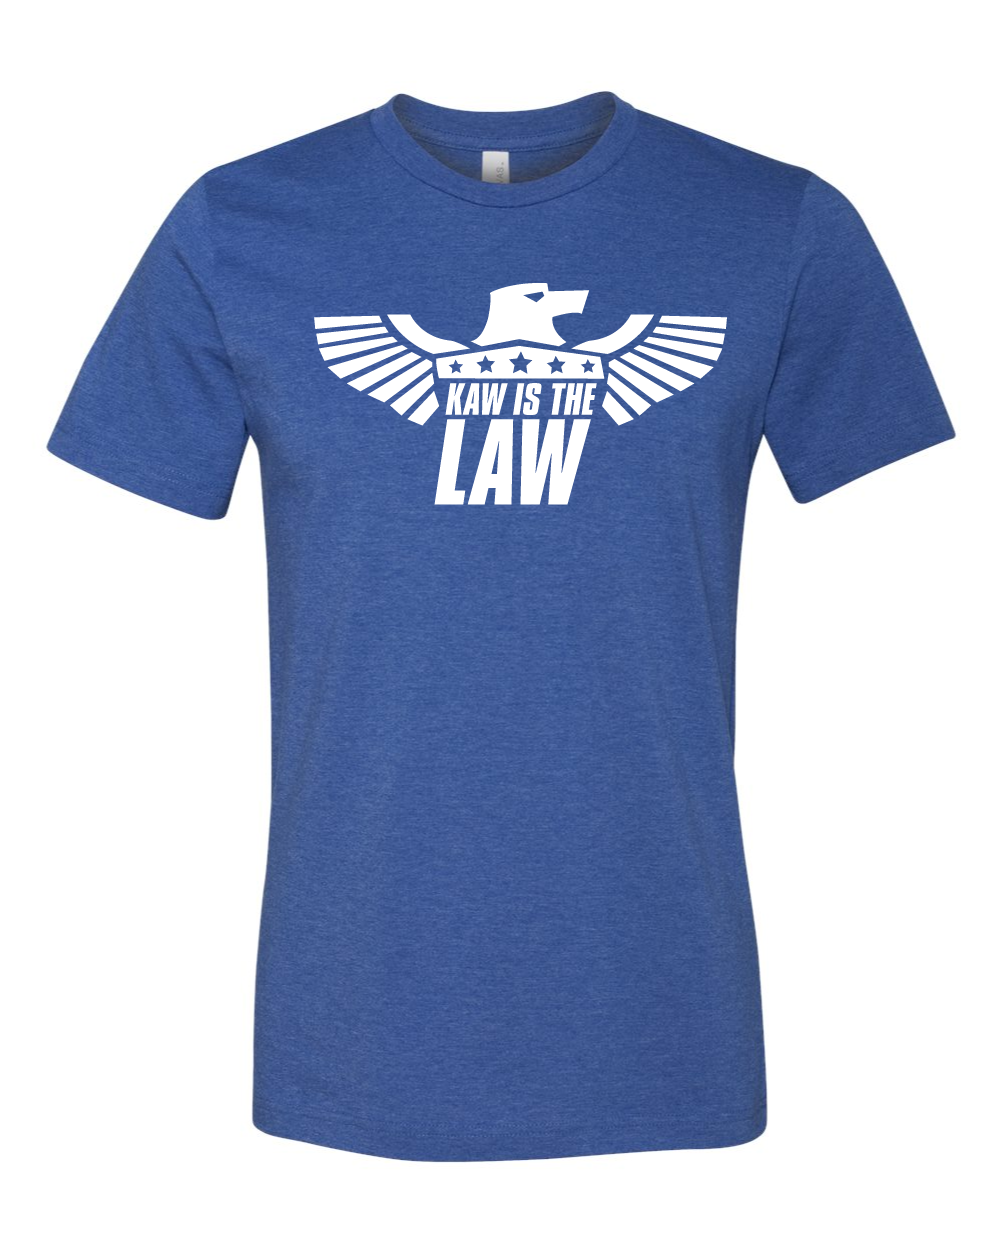 KAW is the LAW - Tee